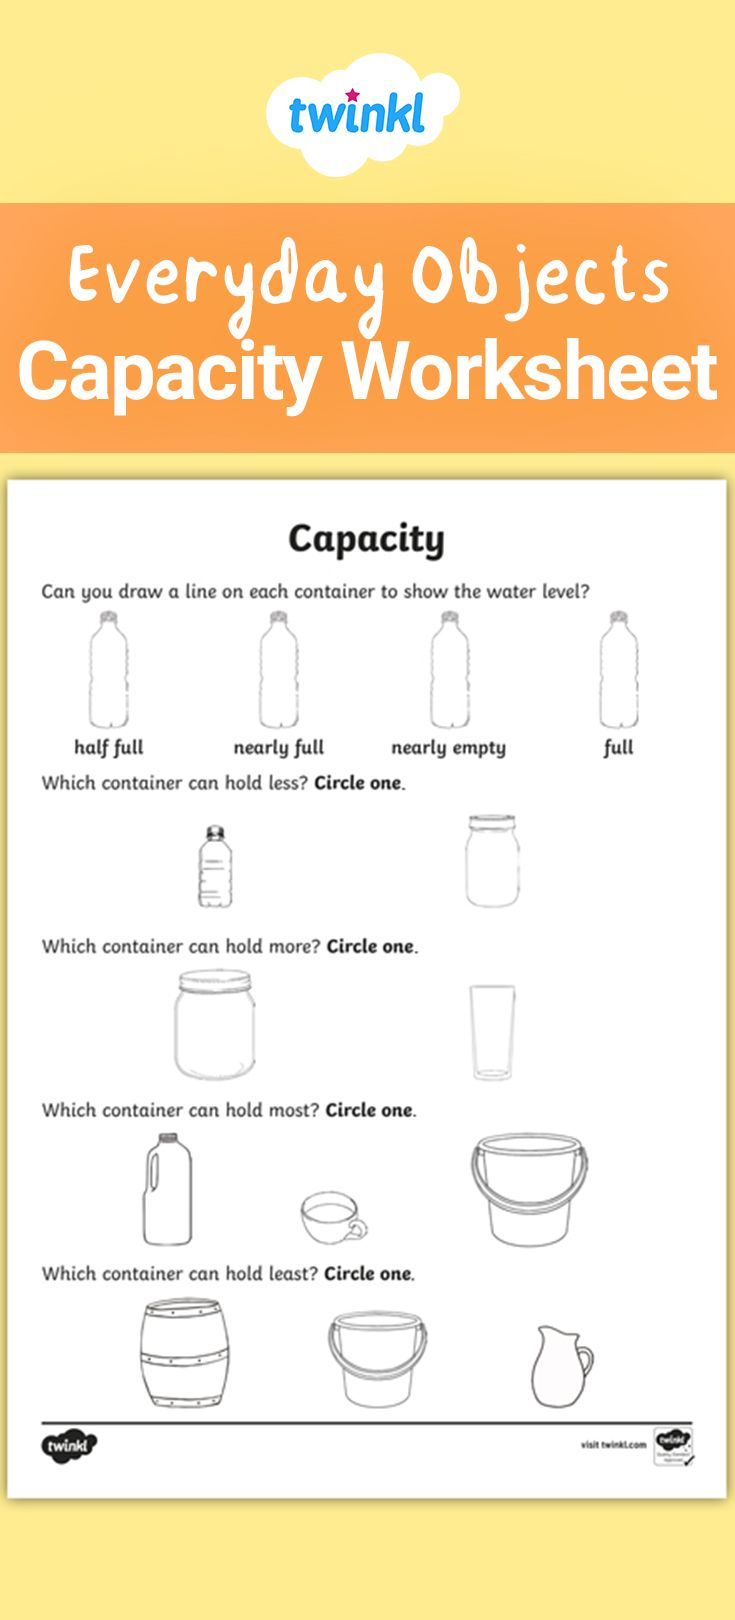 Everyday Objects Capacity And Volume Worksheet Capacity Worksheets Capacity Maths Kindergarten Worksheets [ 1620 x 735 Pixel ]